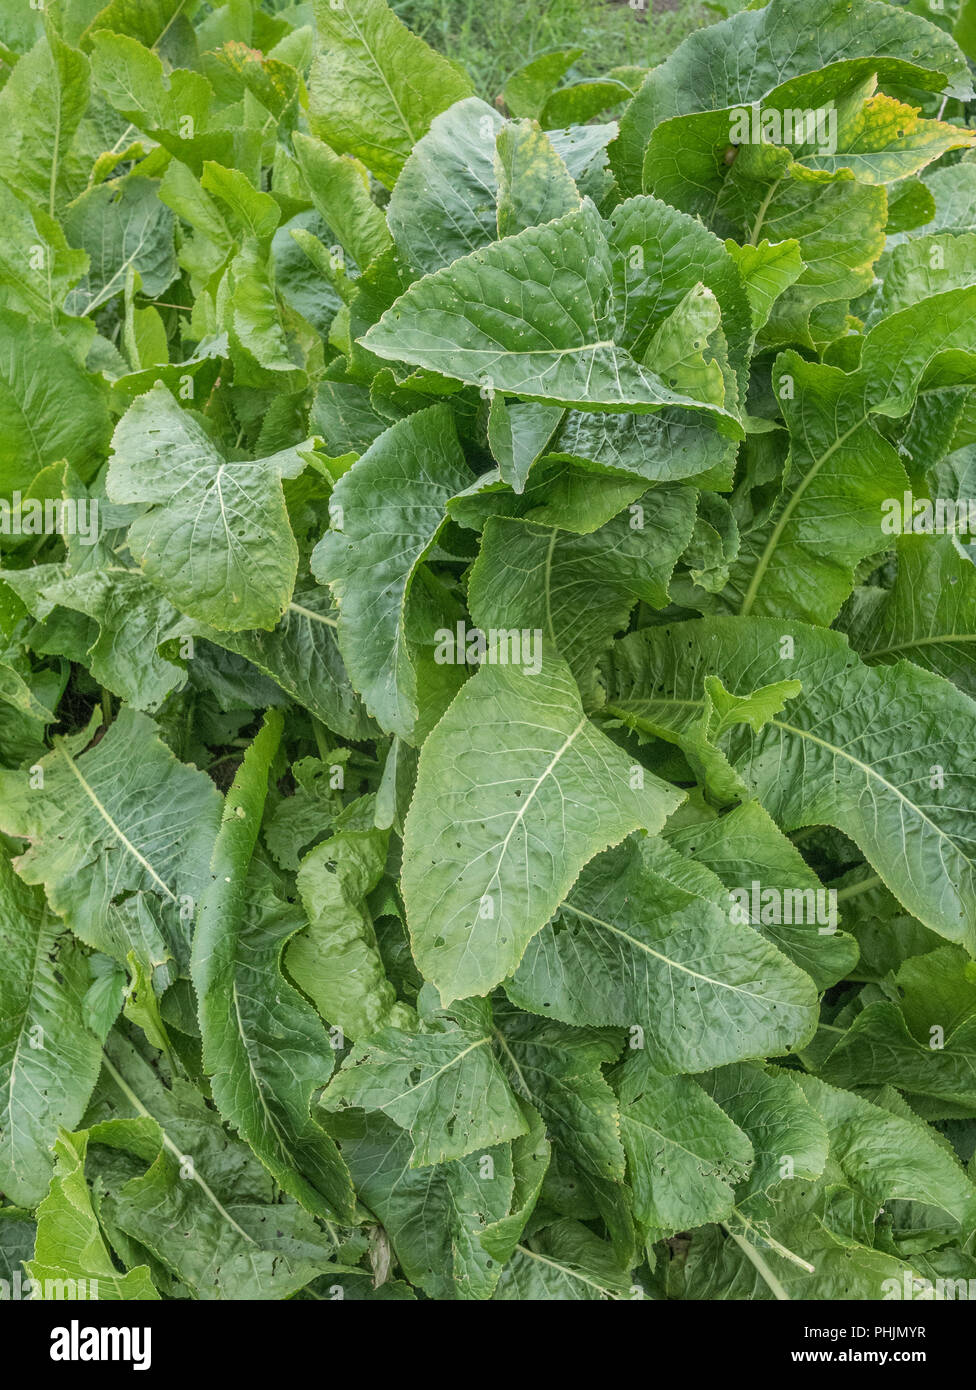 Large green leaves of a cluster of Horseradish / Armoracia rusticana plants growing - Stock Image